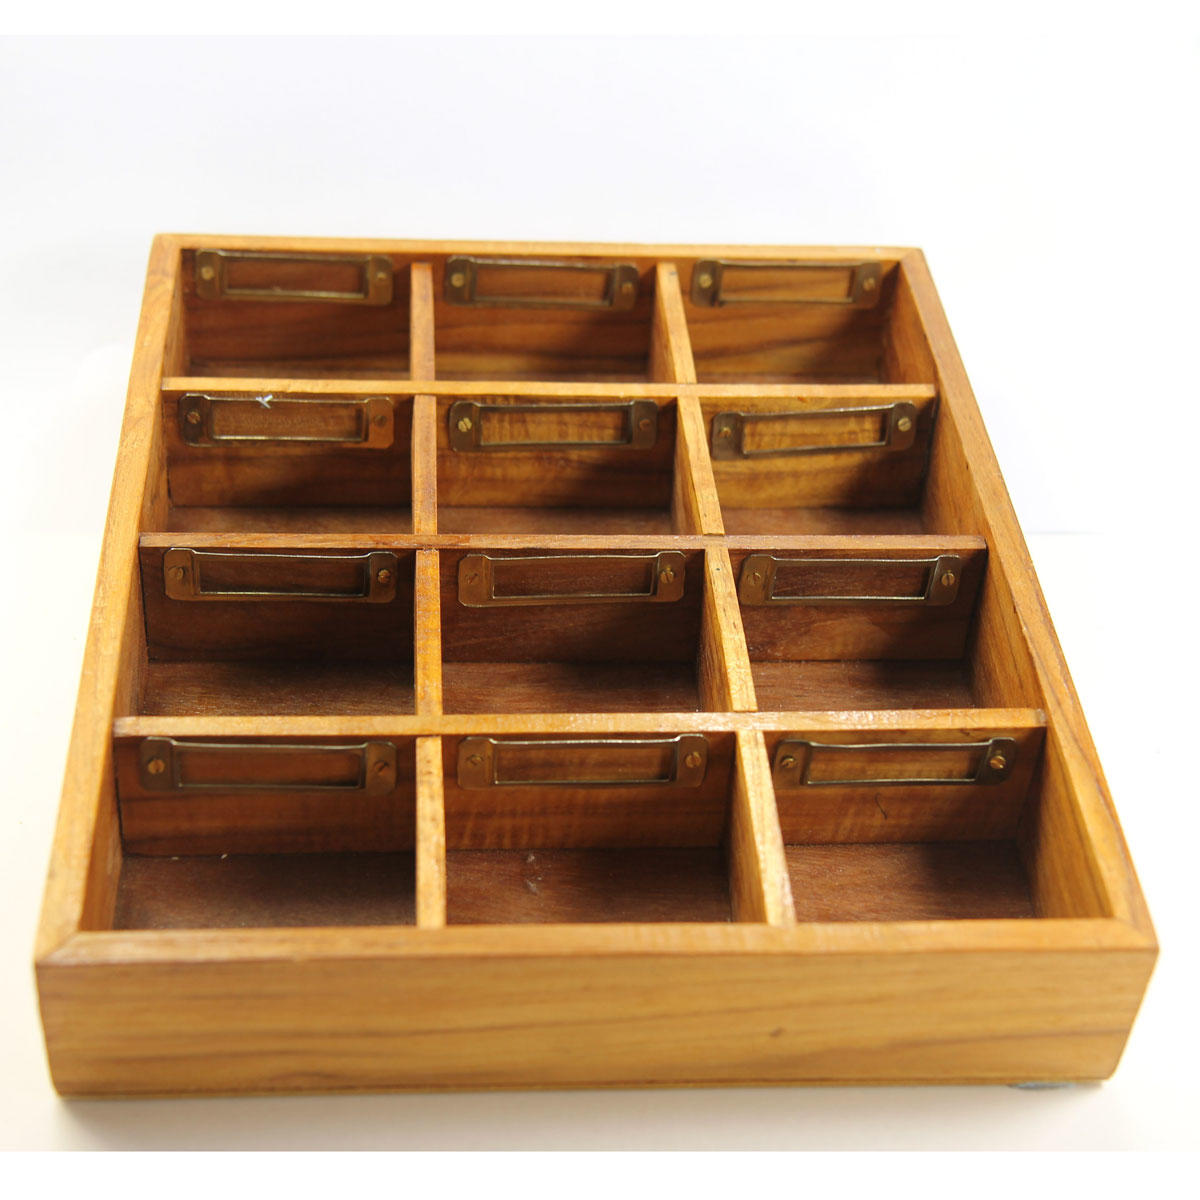 Bead Tray or Bead Box